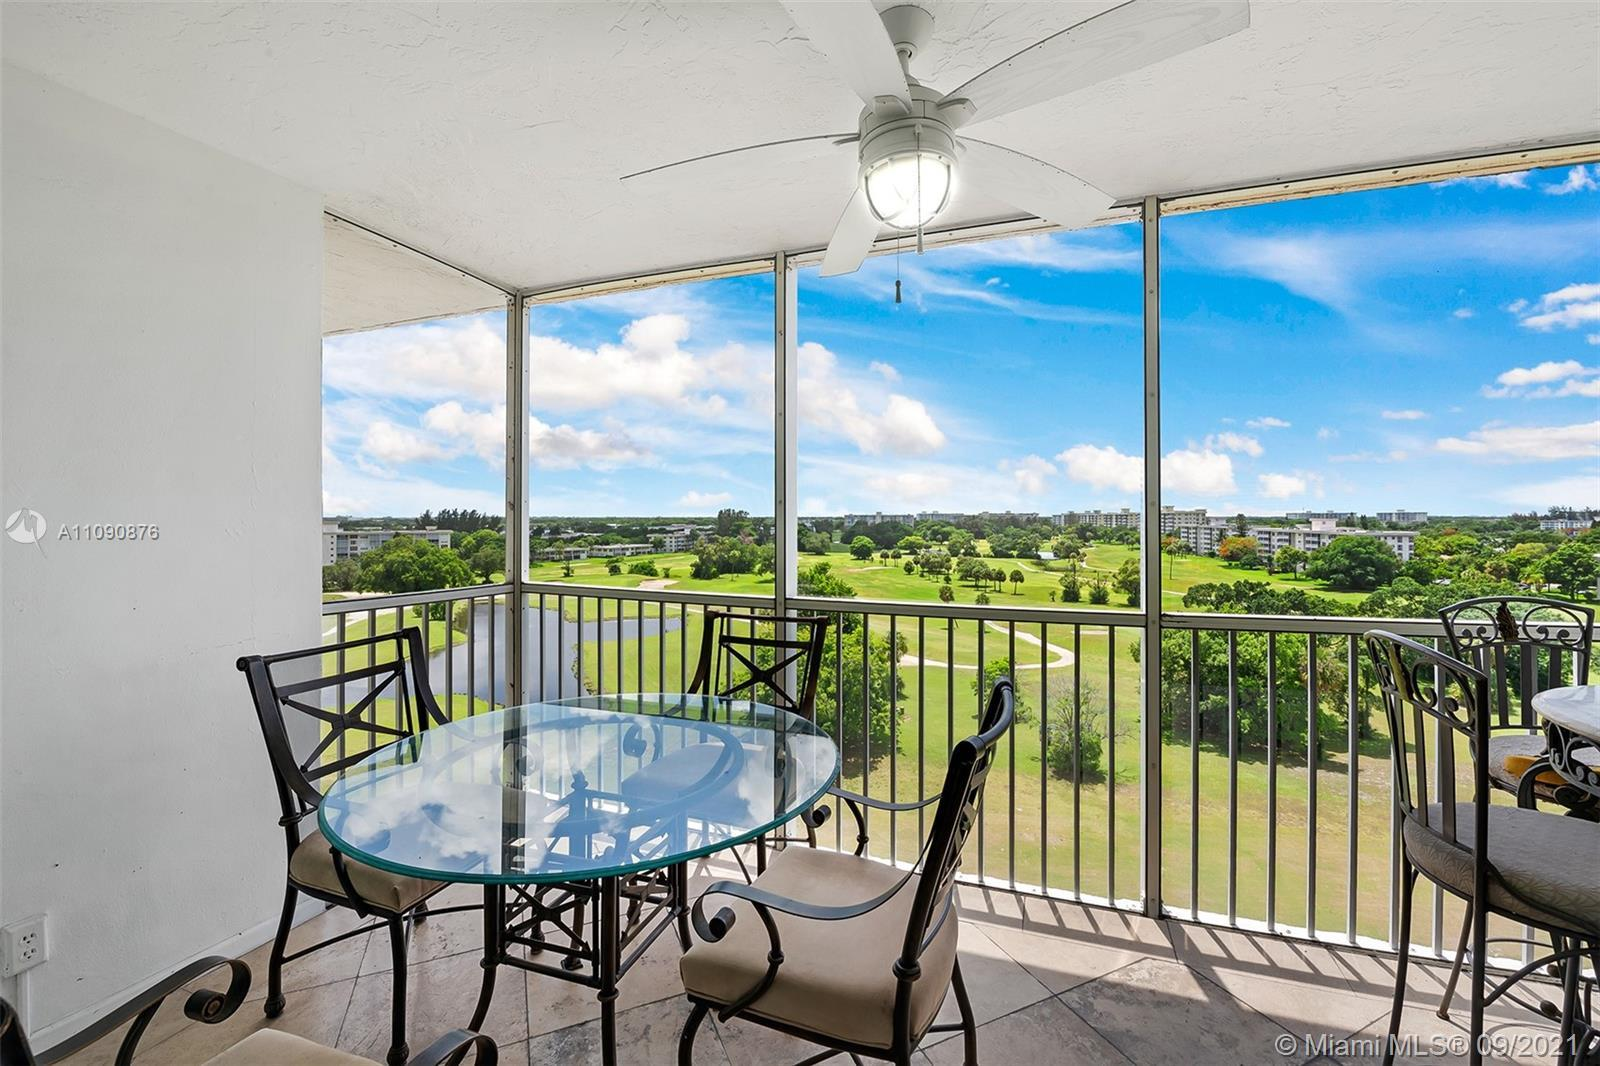 SPECTACULAR GOLF COURSE VIEWS FROM THIS BEAUTIFULLY UPGRADED PENTHOUSE CONDO! 2 BEDROOMS WITH 2 UPDA